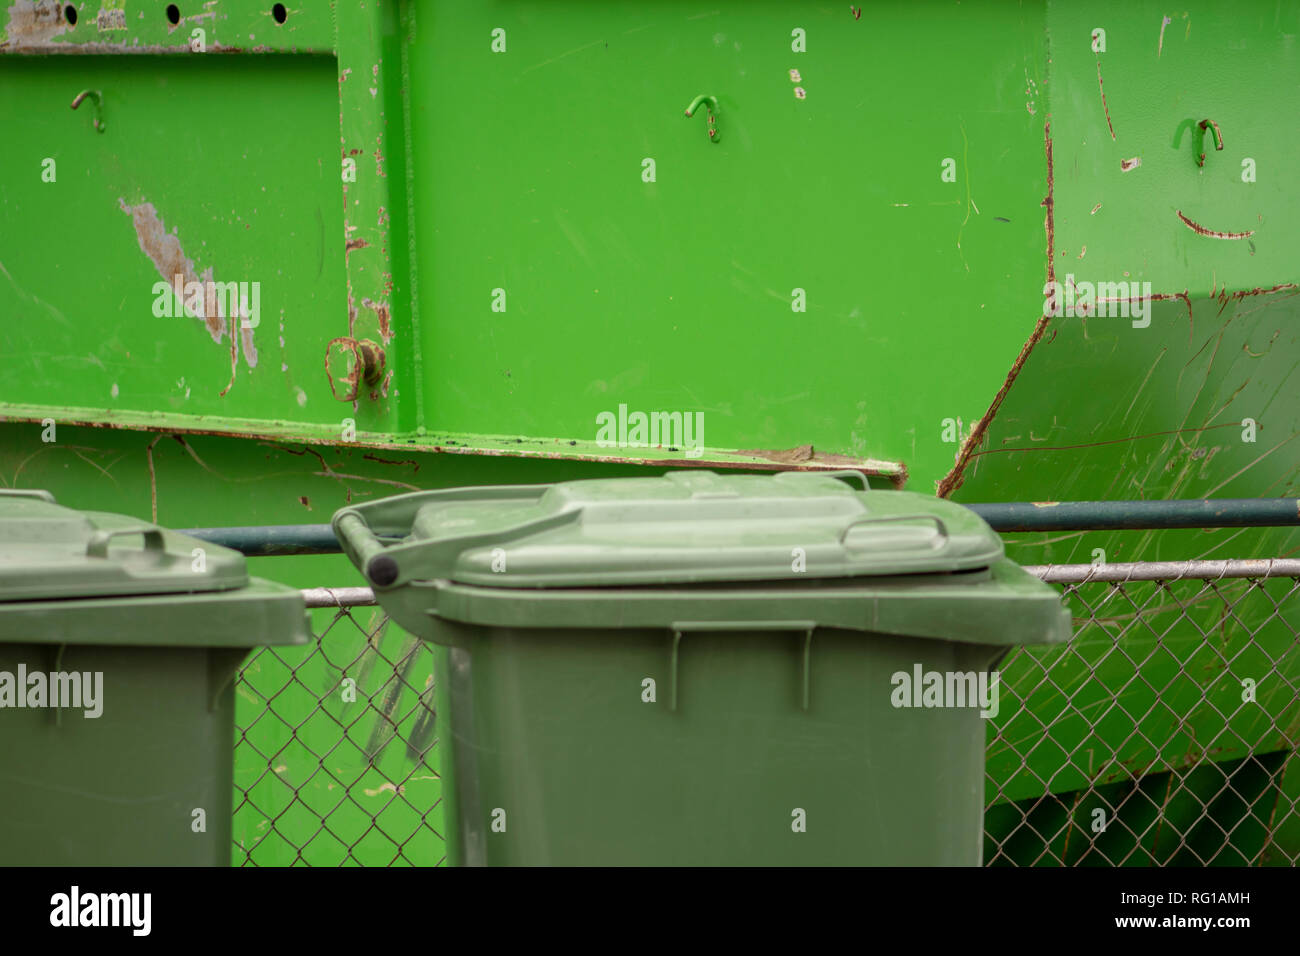 green trash can in front of a green trash container - Stock Image